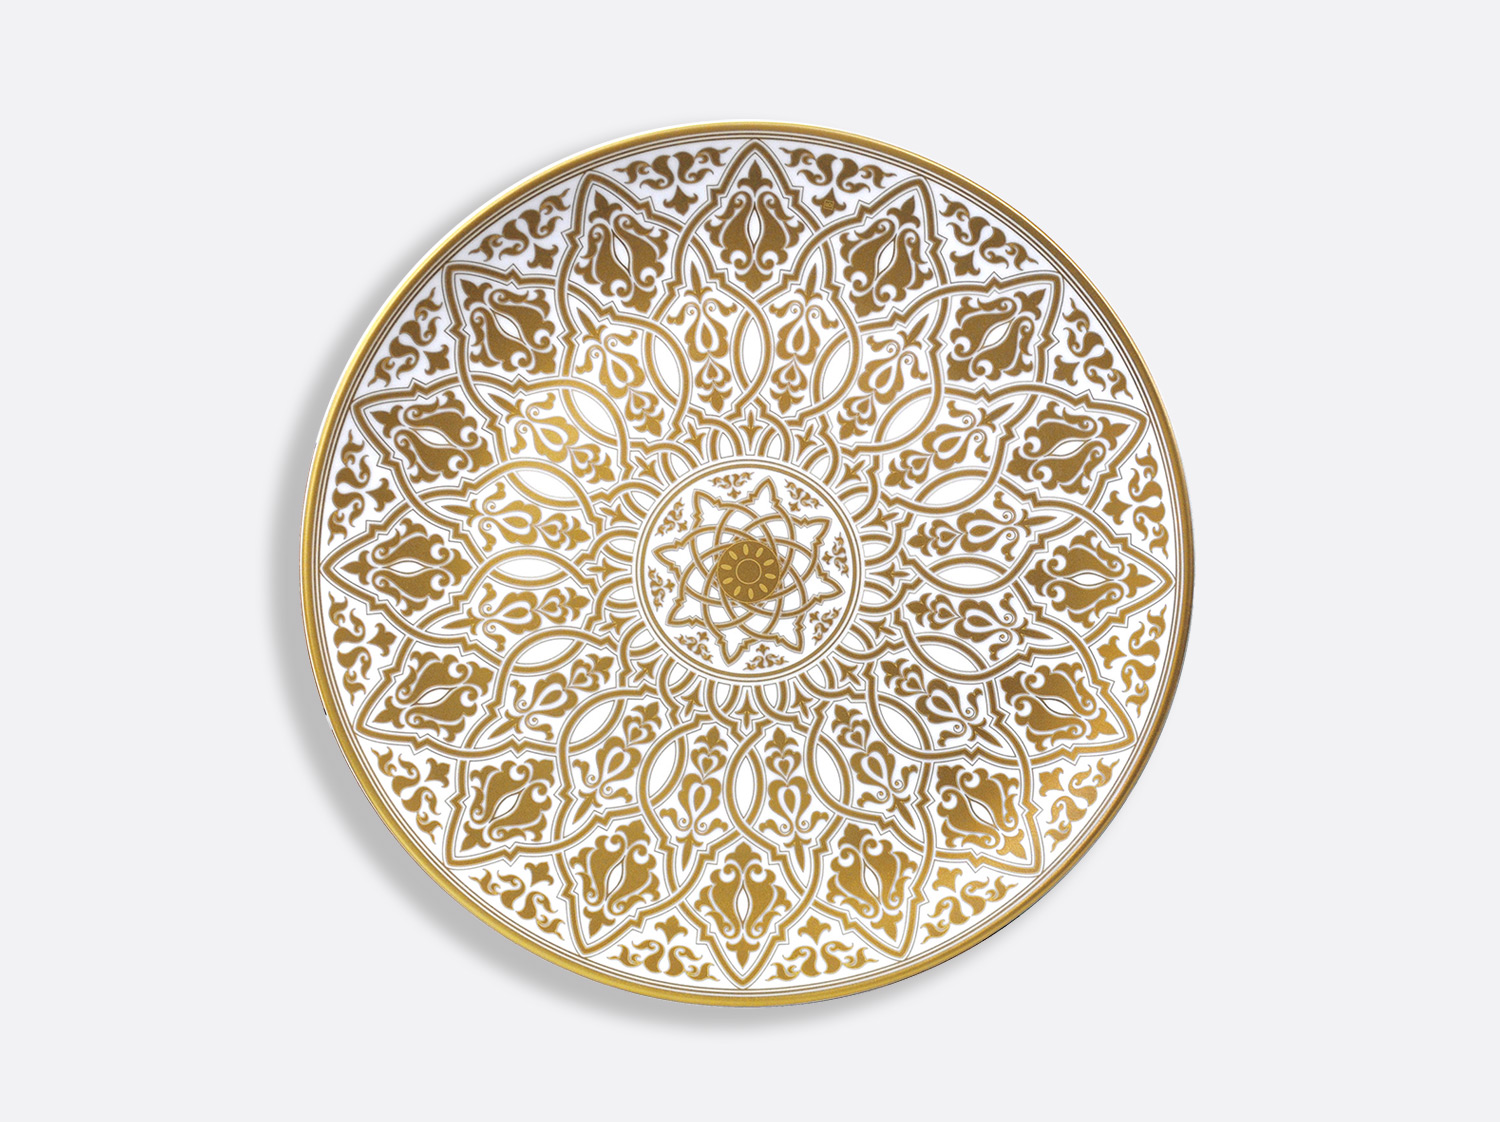 Assiette de présentation ultra plate 31 cm en porcelaine de la collection Venise Bernardaud